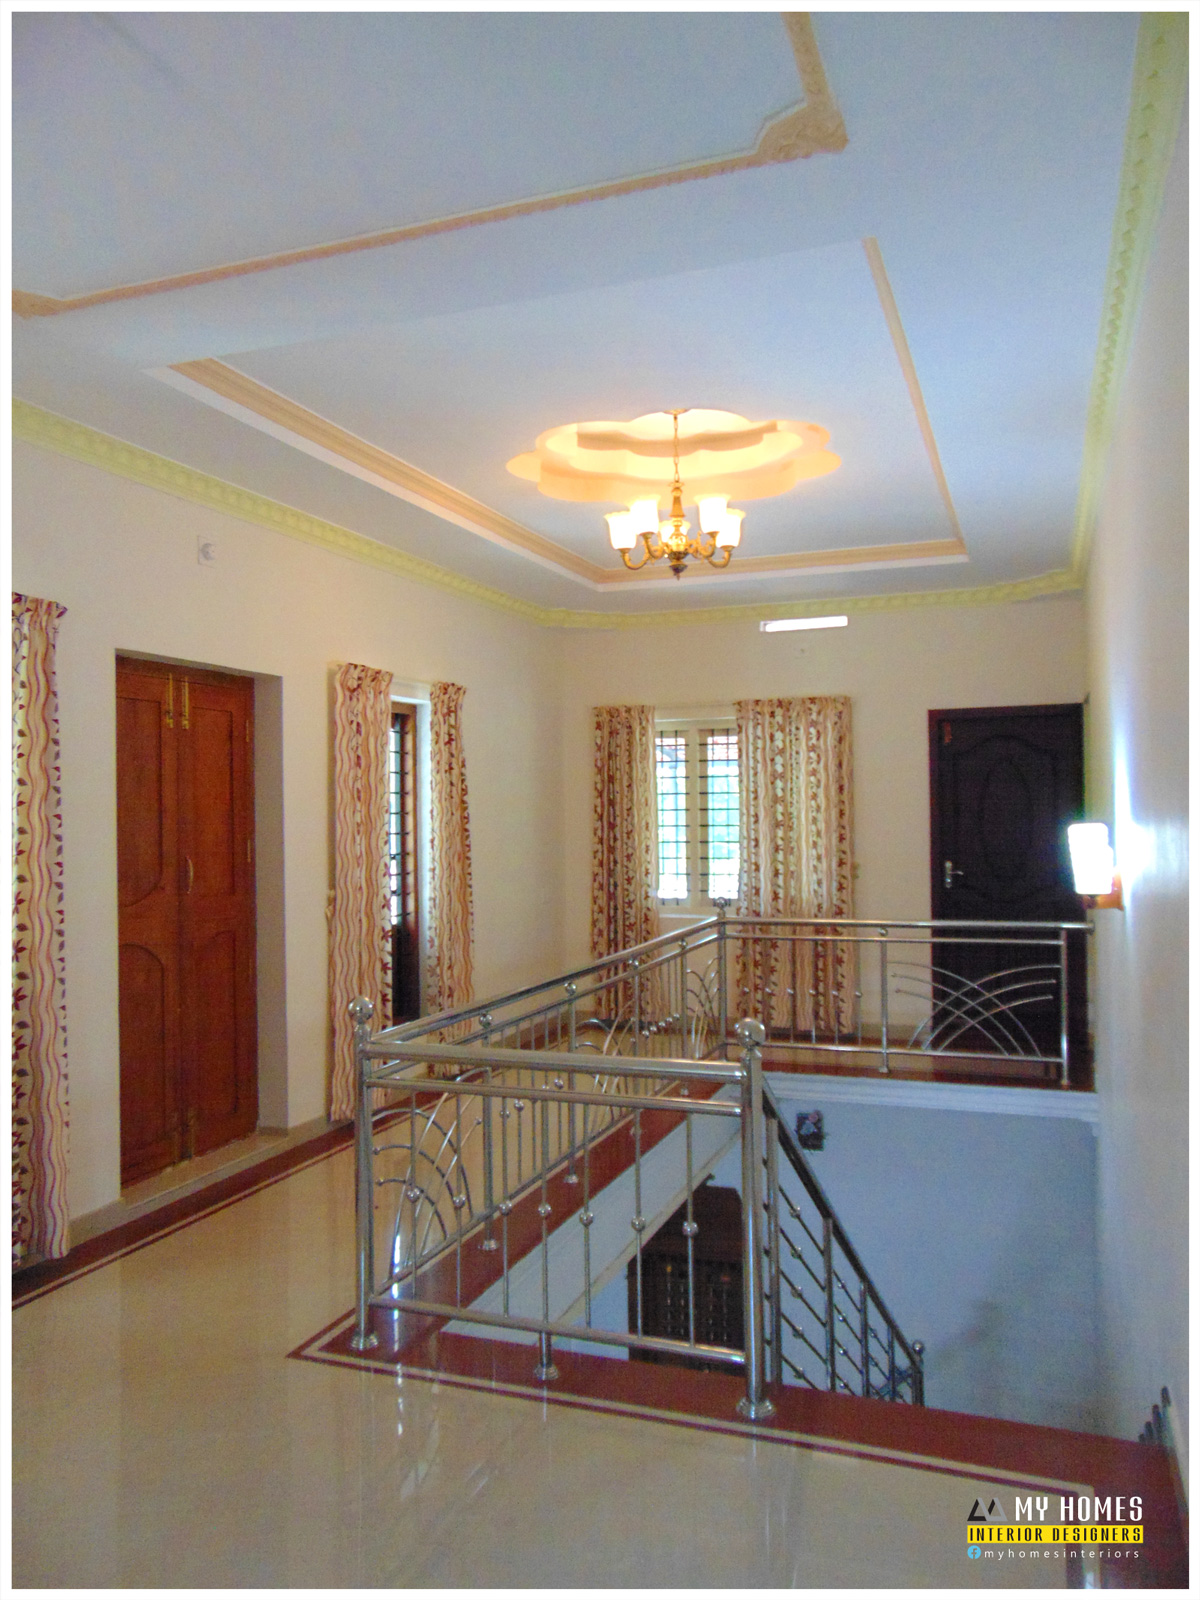 Kerala home interior photos clubdeases com kerala home for Kerala home interior